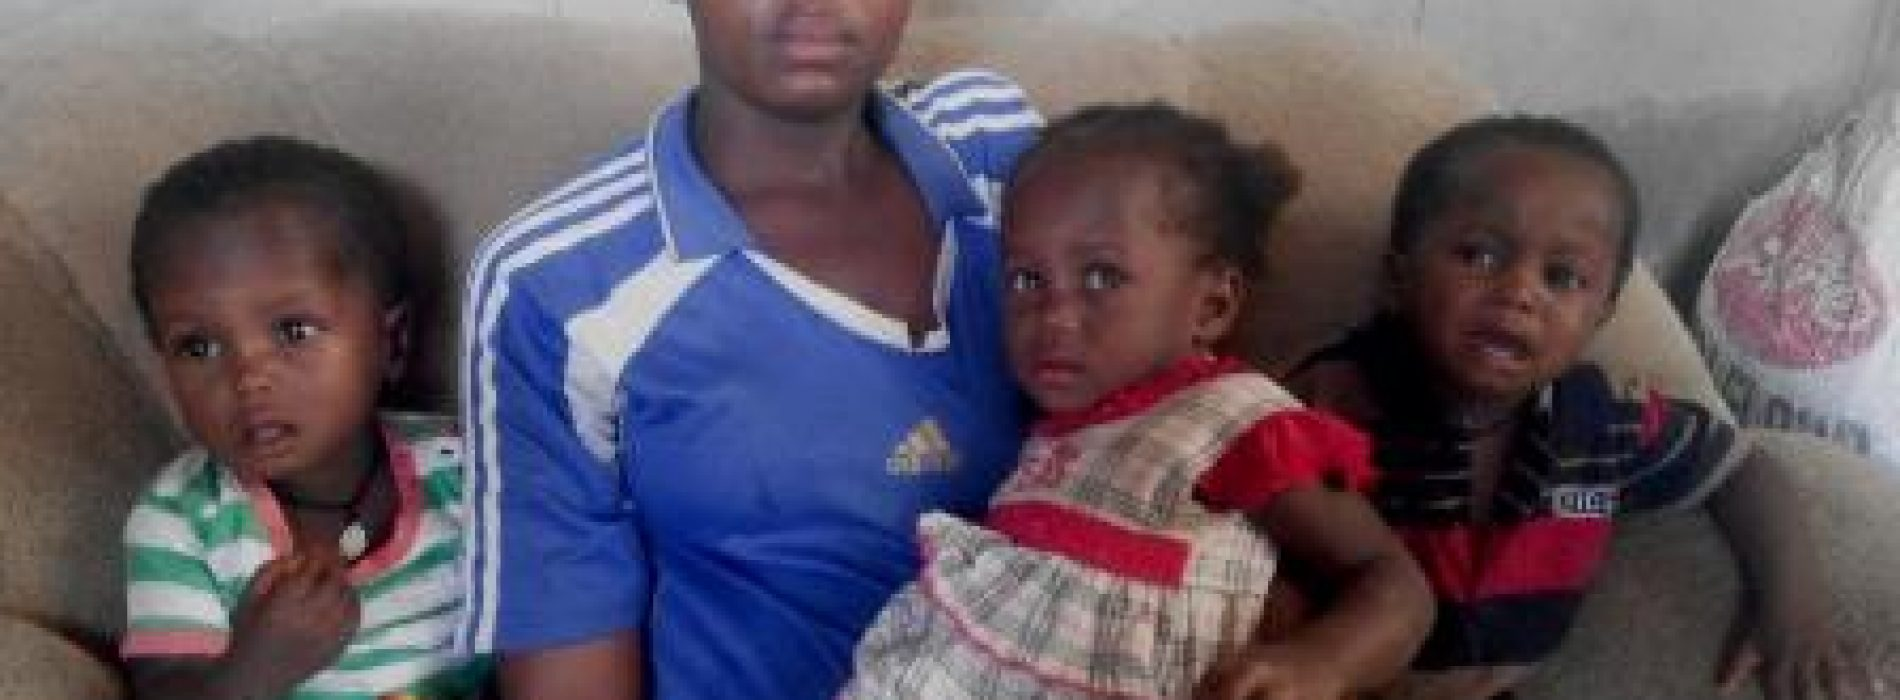 Ordeal of child delivery in Abuja community without water, hospital